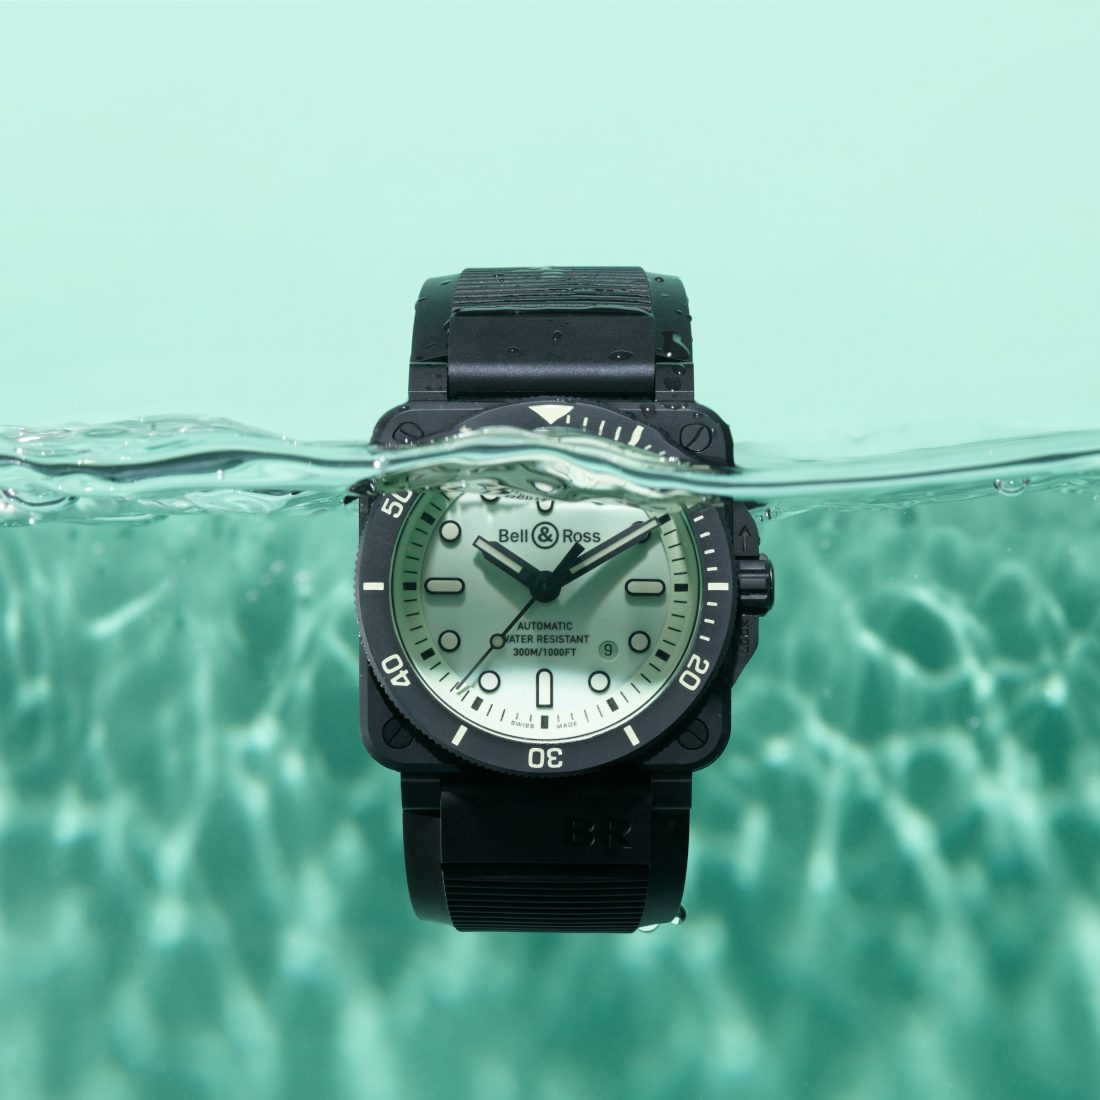 The Bell & Ross BR03-92 DIVER FULL LUM during the day